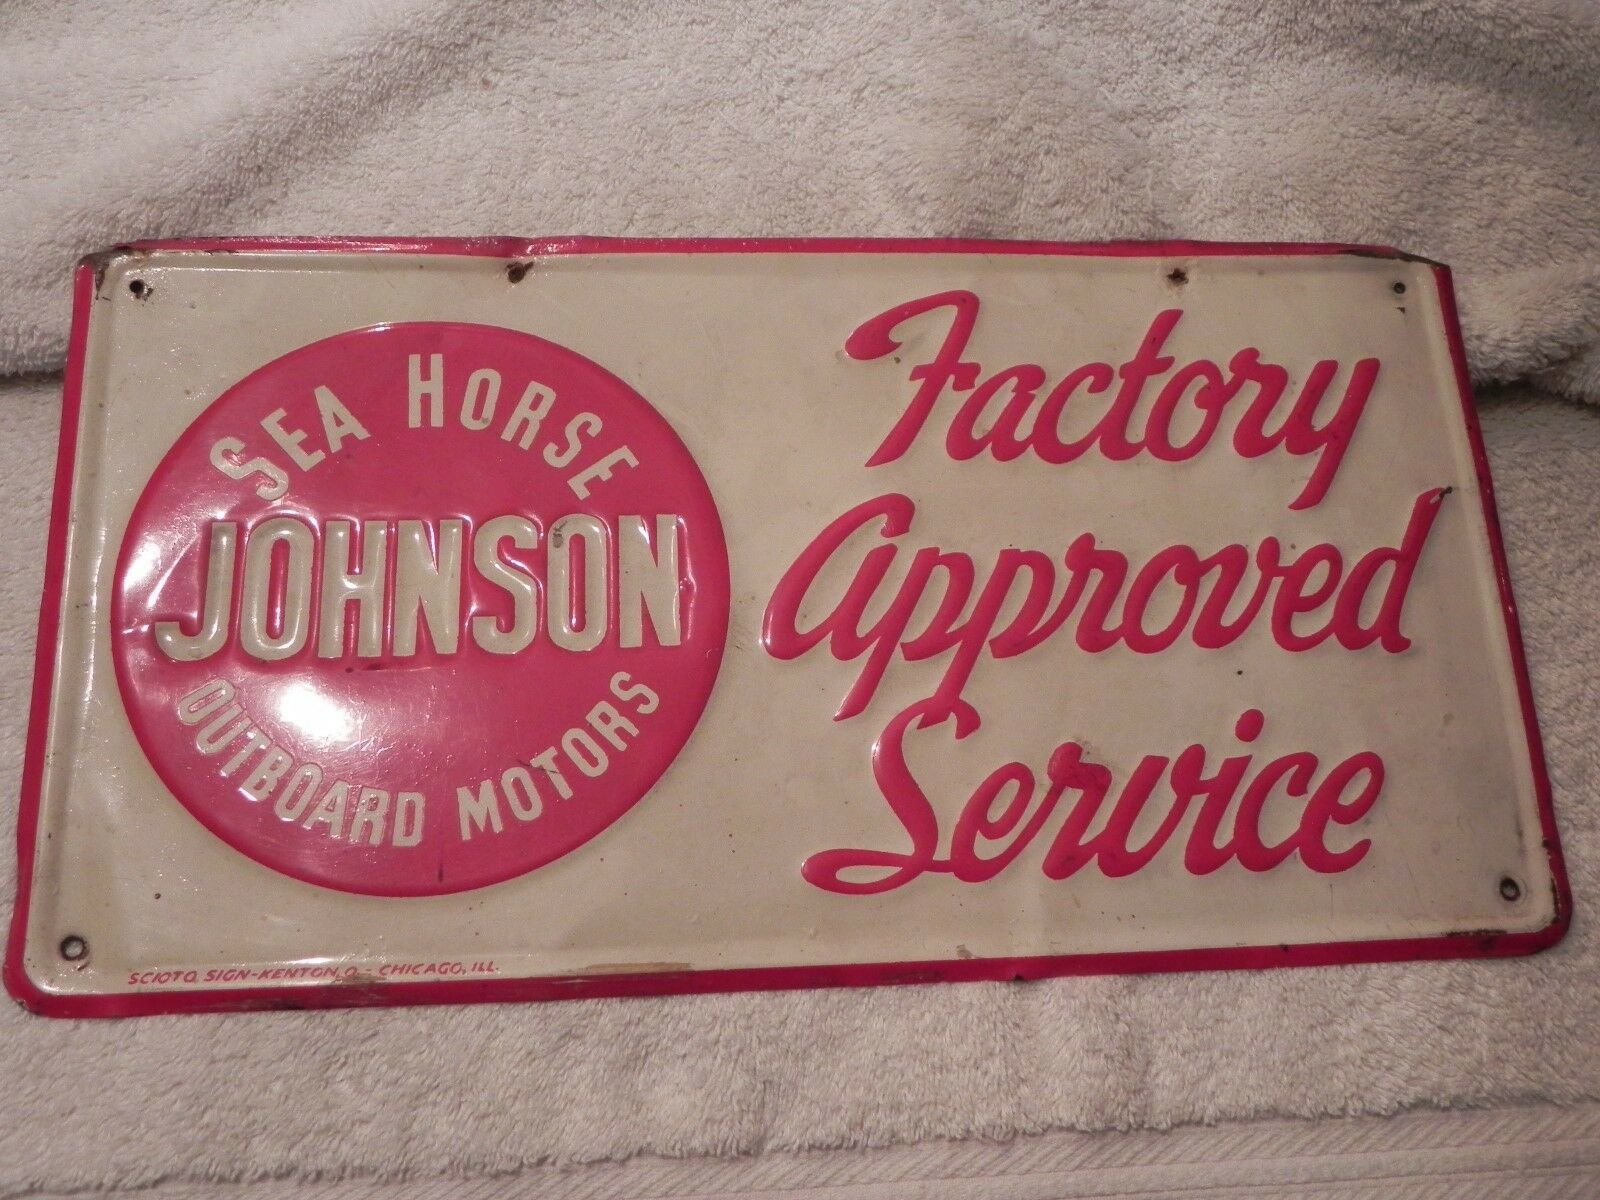 Vintage Original Johnson Sea Horse Outboard 1950's Factory Approved Service sign